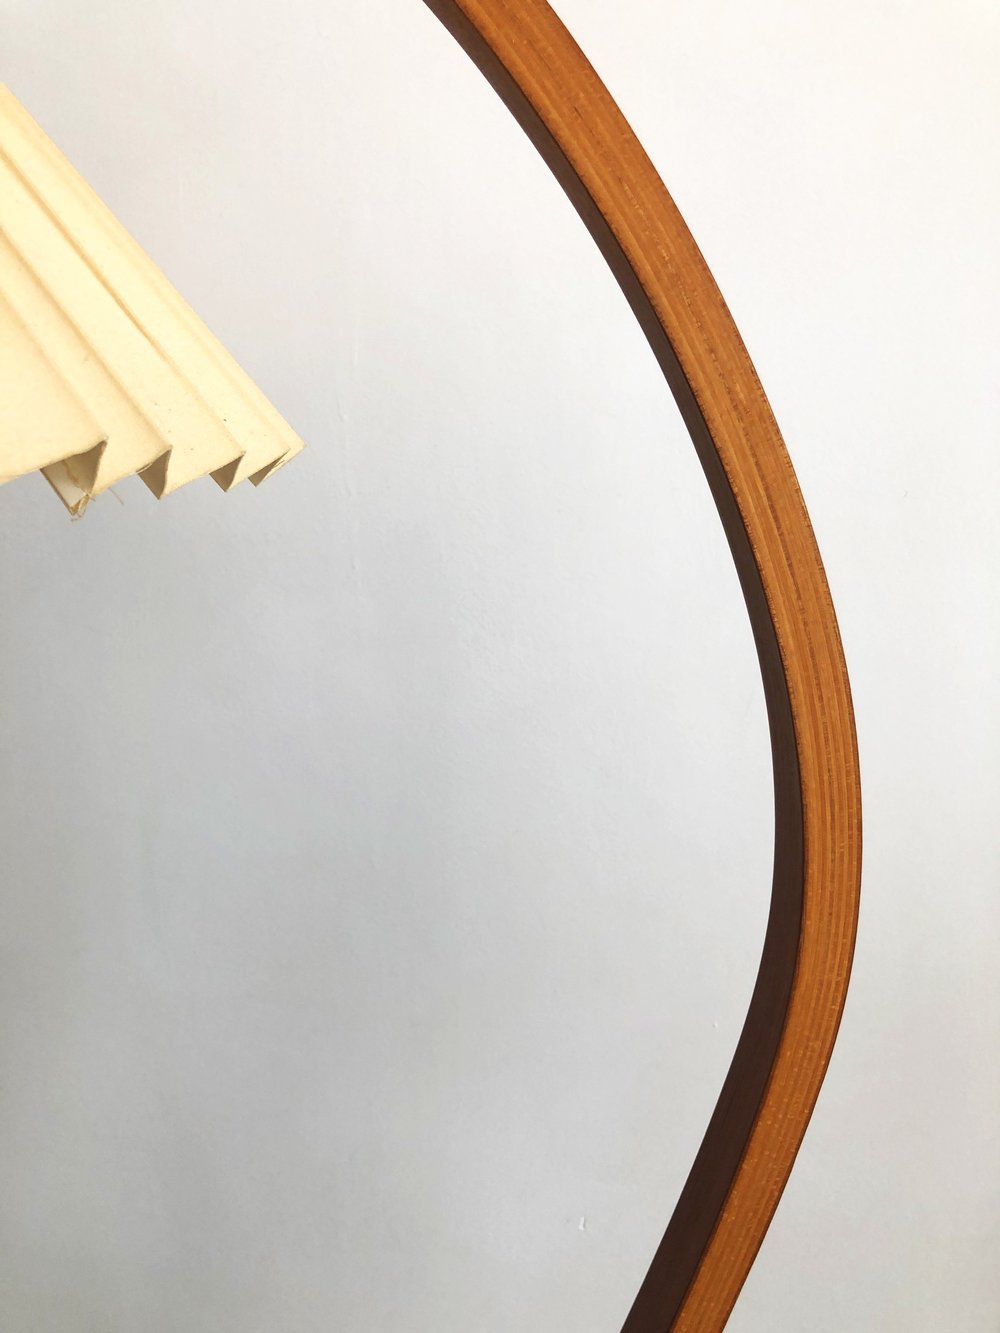 1970s Bent Teak Danish Caprani Floor lamp